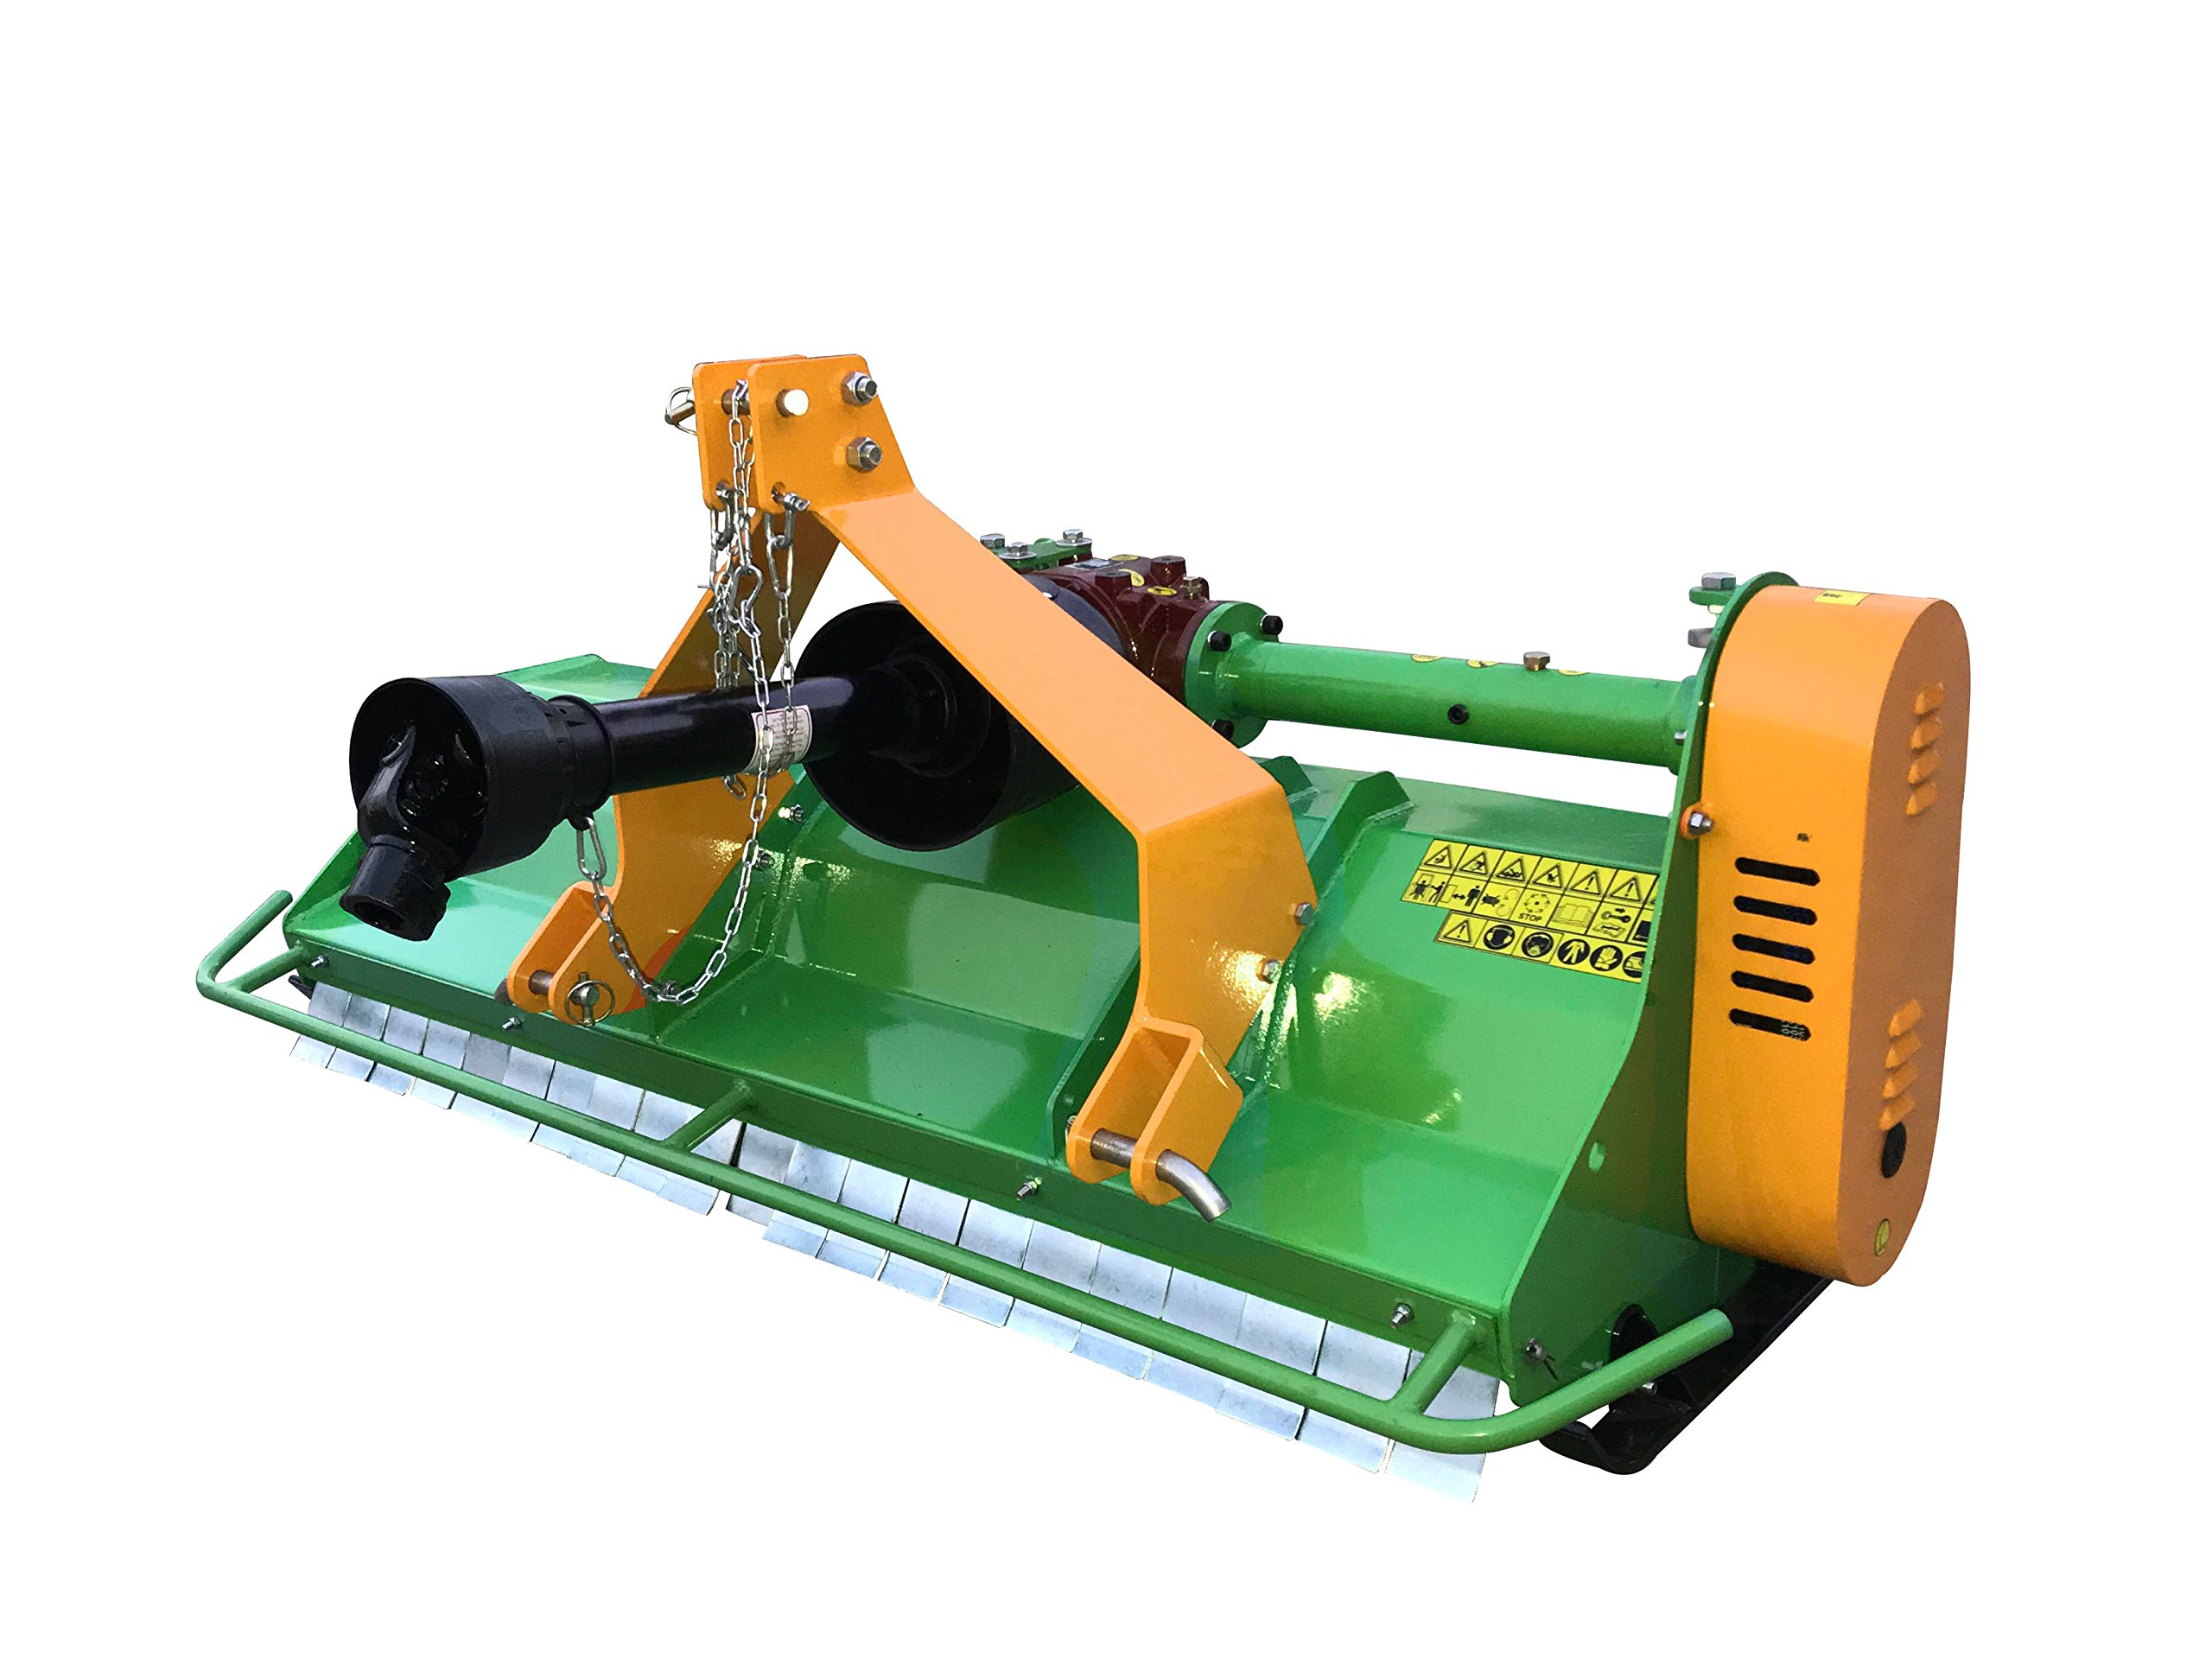 Nova Tractor 68'' Heavy Duty 3 pt Flail Mower, for Tractor 40 to 55 HP, Cat I & II by Nova Tractor